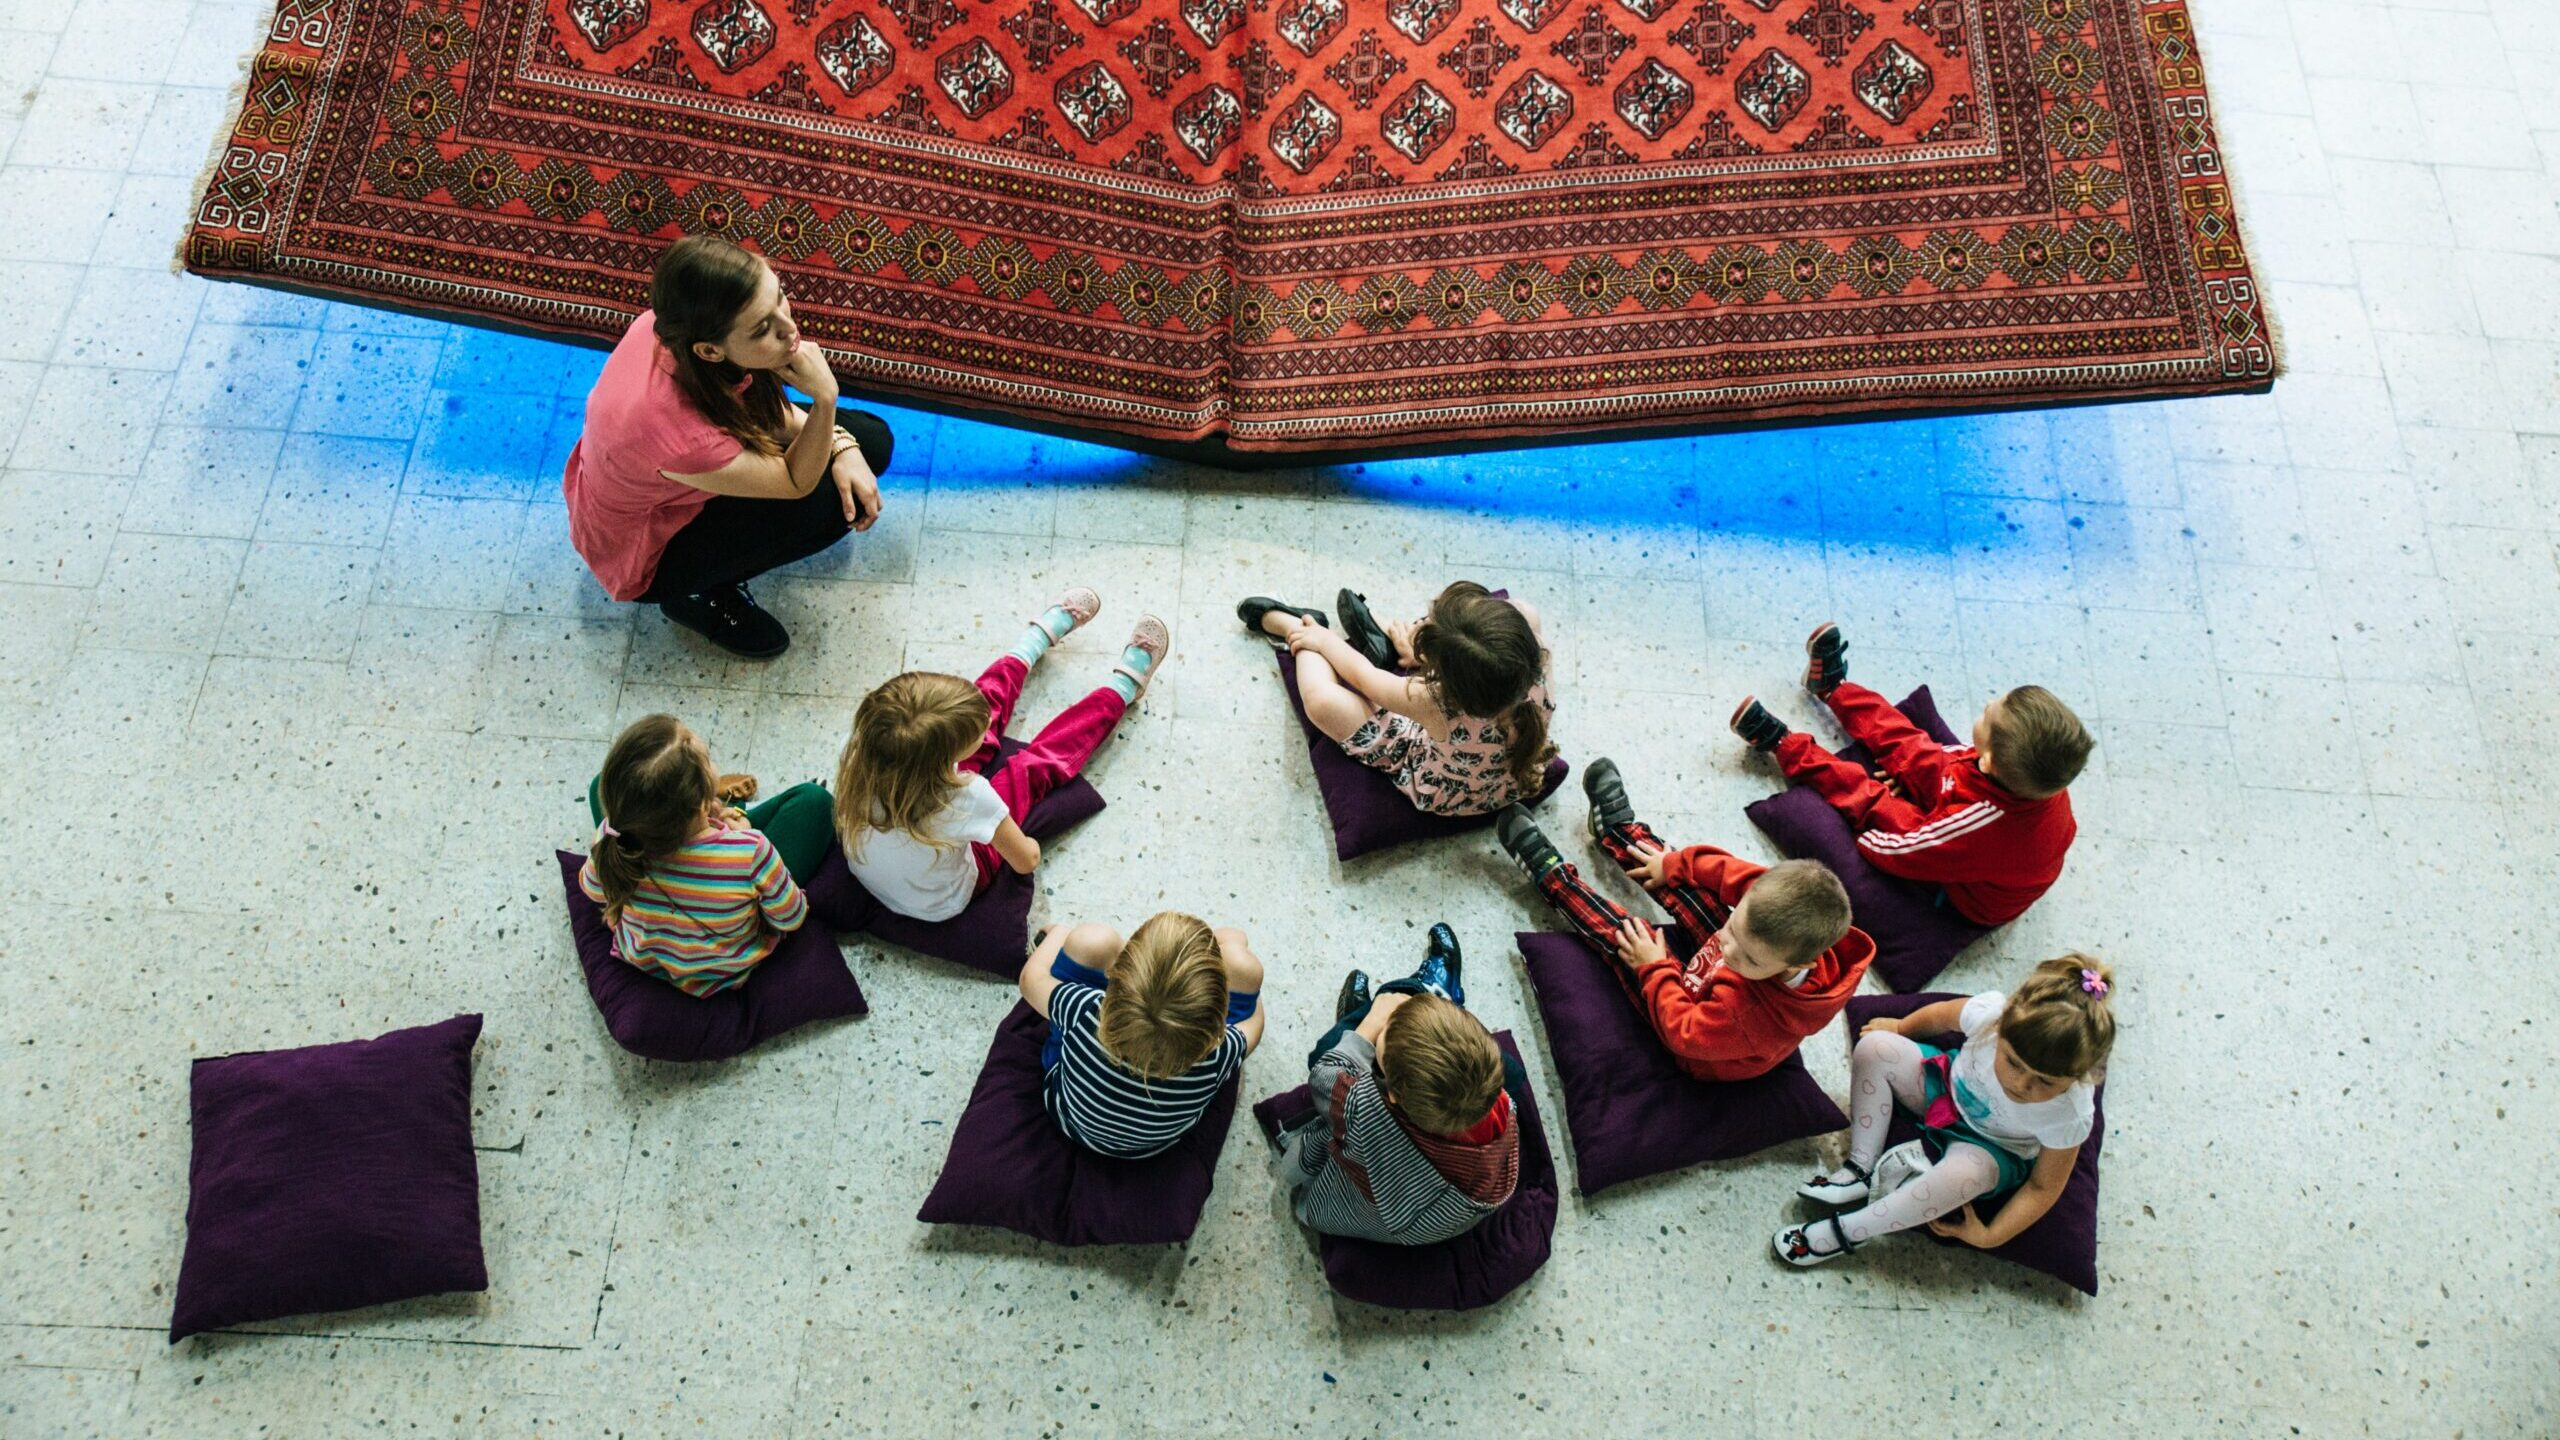 A museum educator leading a discussion with a group of children on the floor in front of a work of art